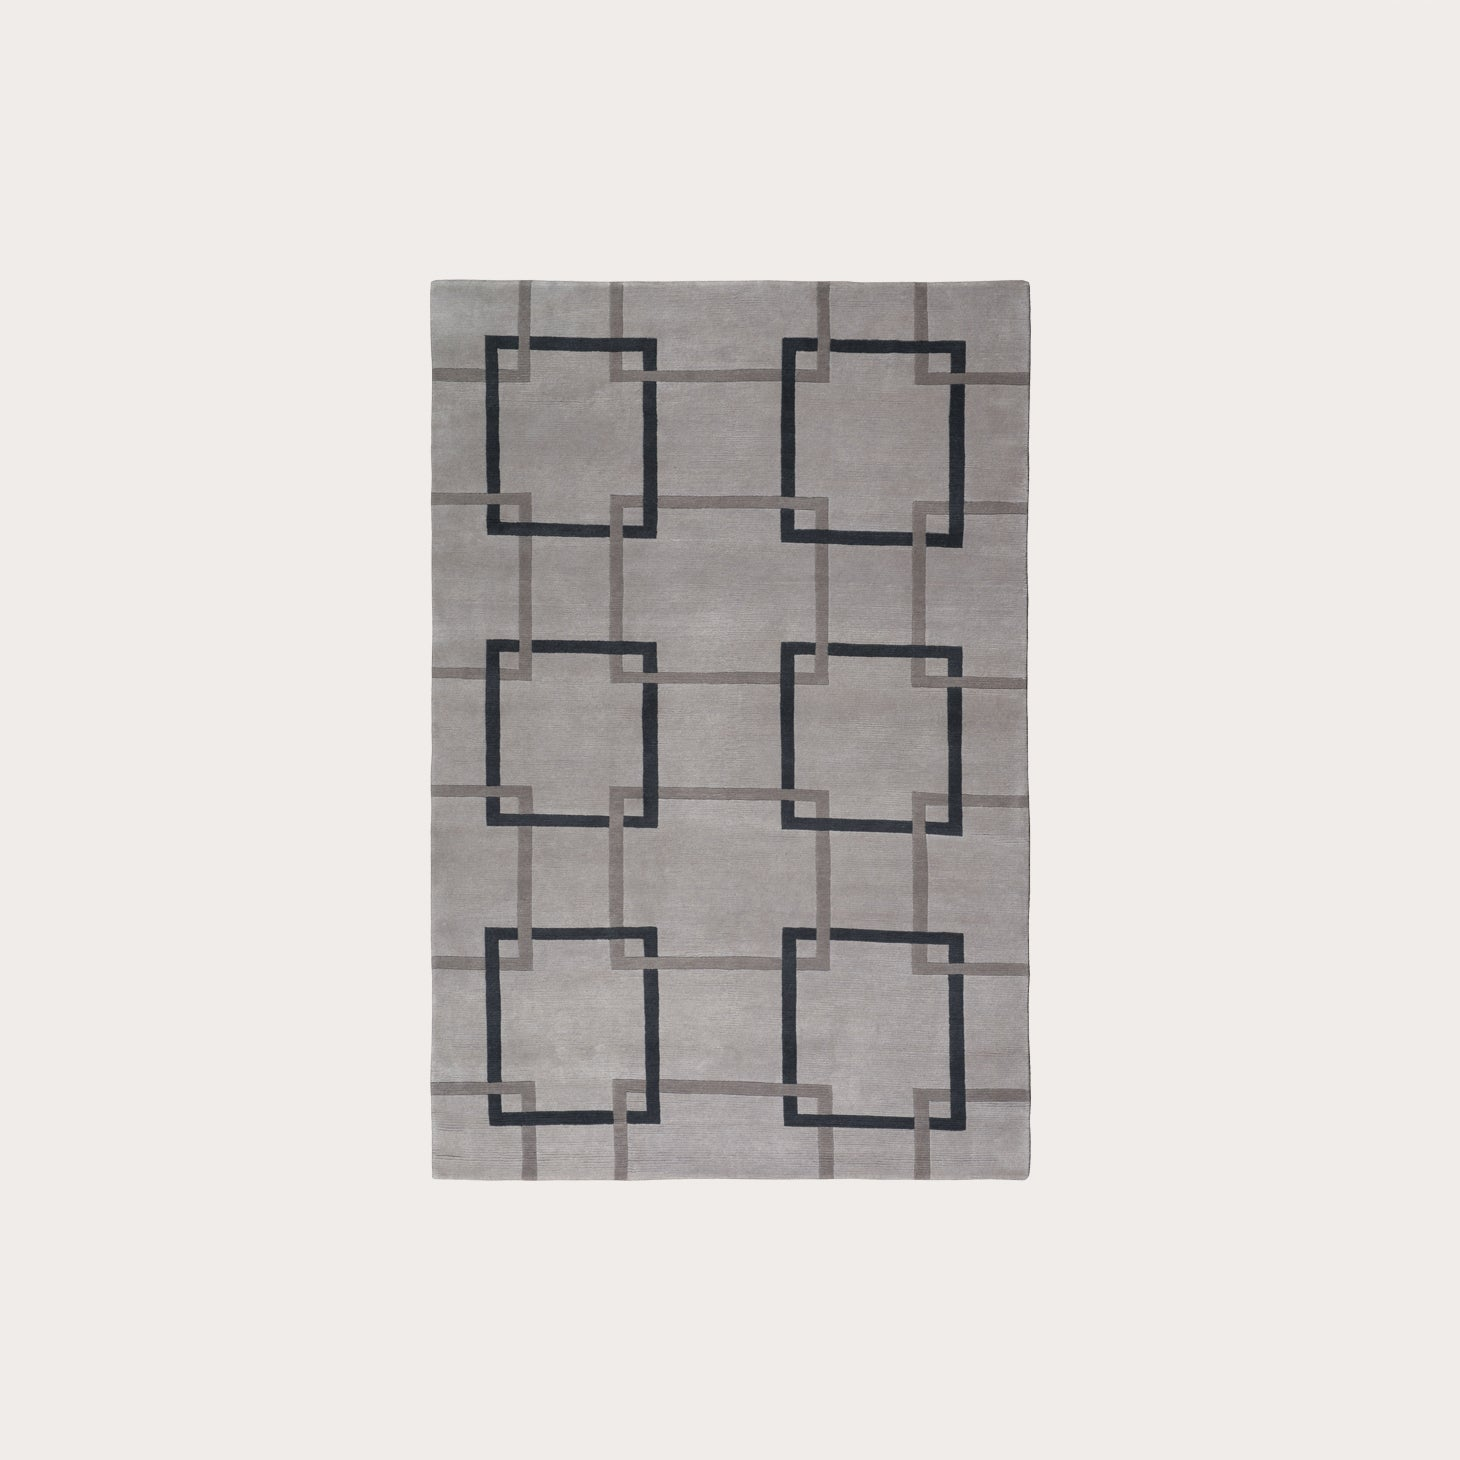 Square Chains Lead Floor Coverings The Rug Company Designer Furniture Sku: 391-150-10619